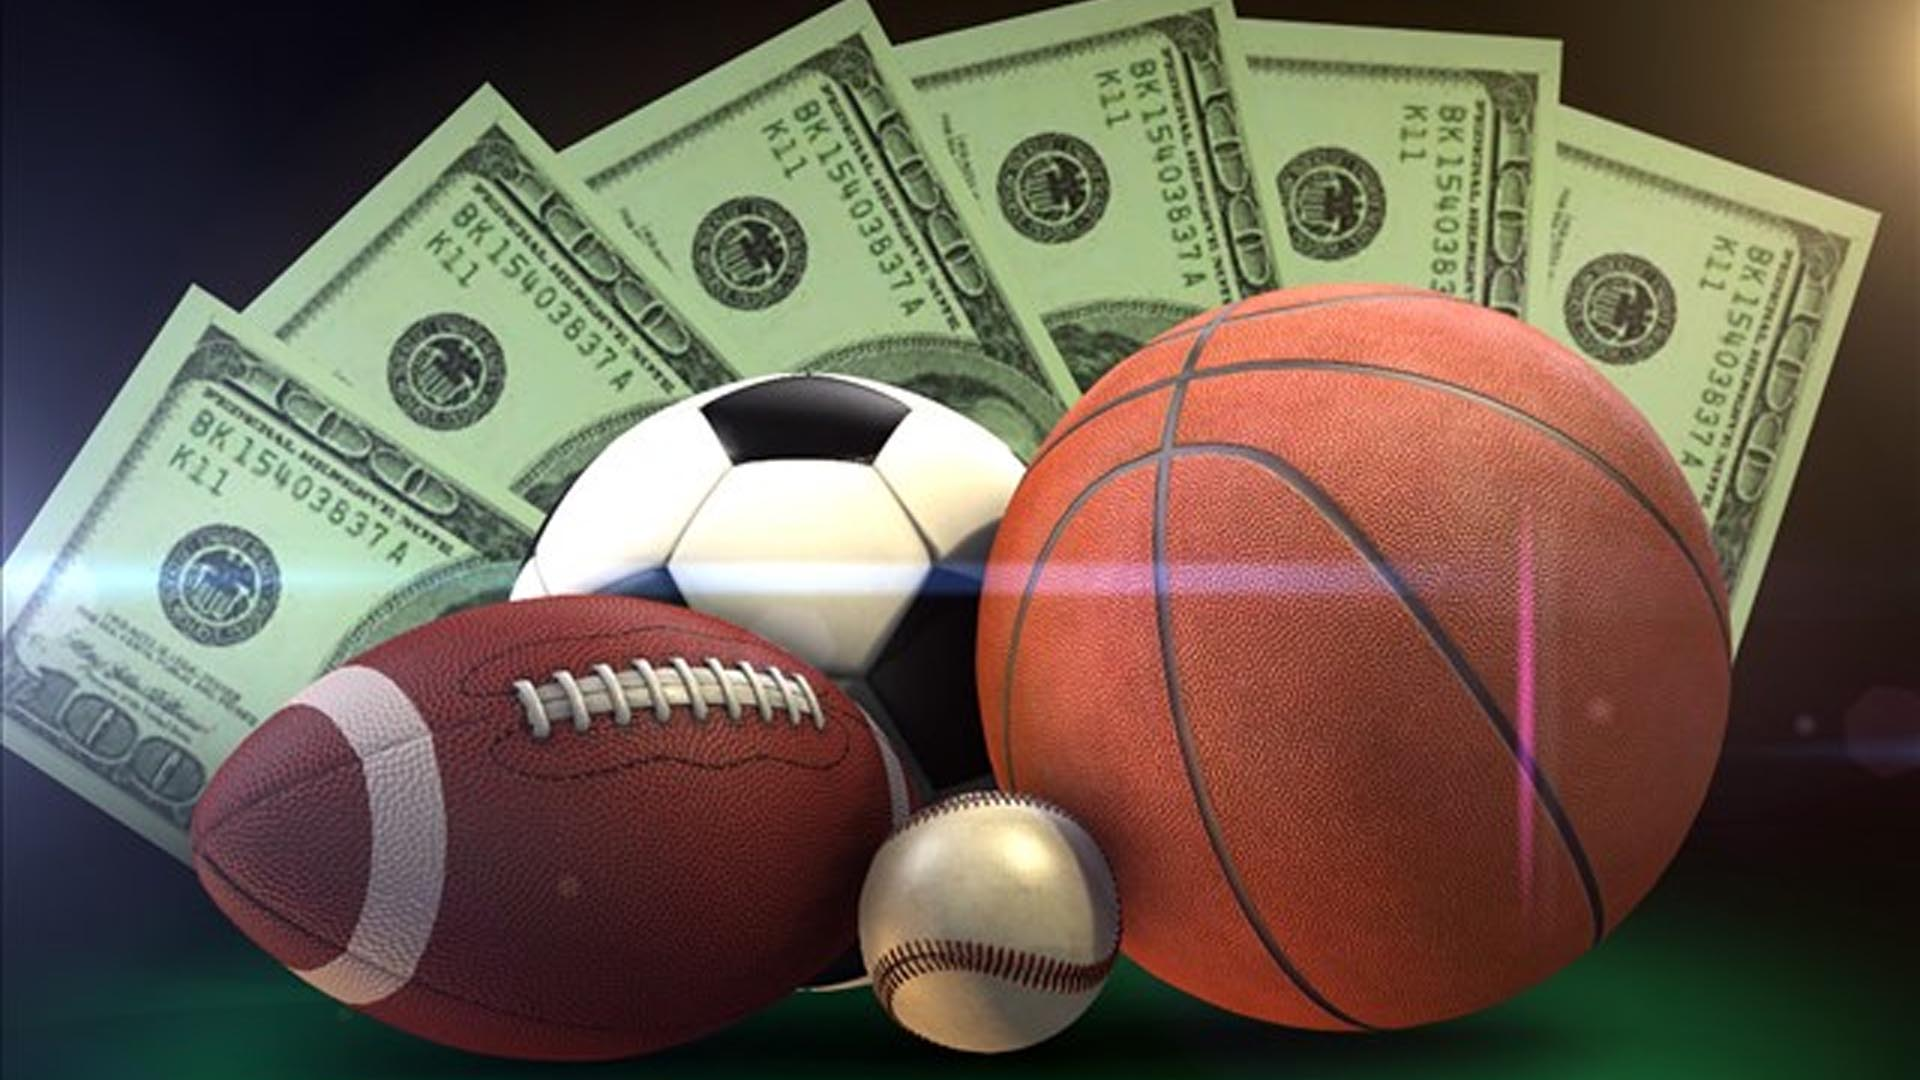 What are the biggest advantages of betting on sports?